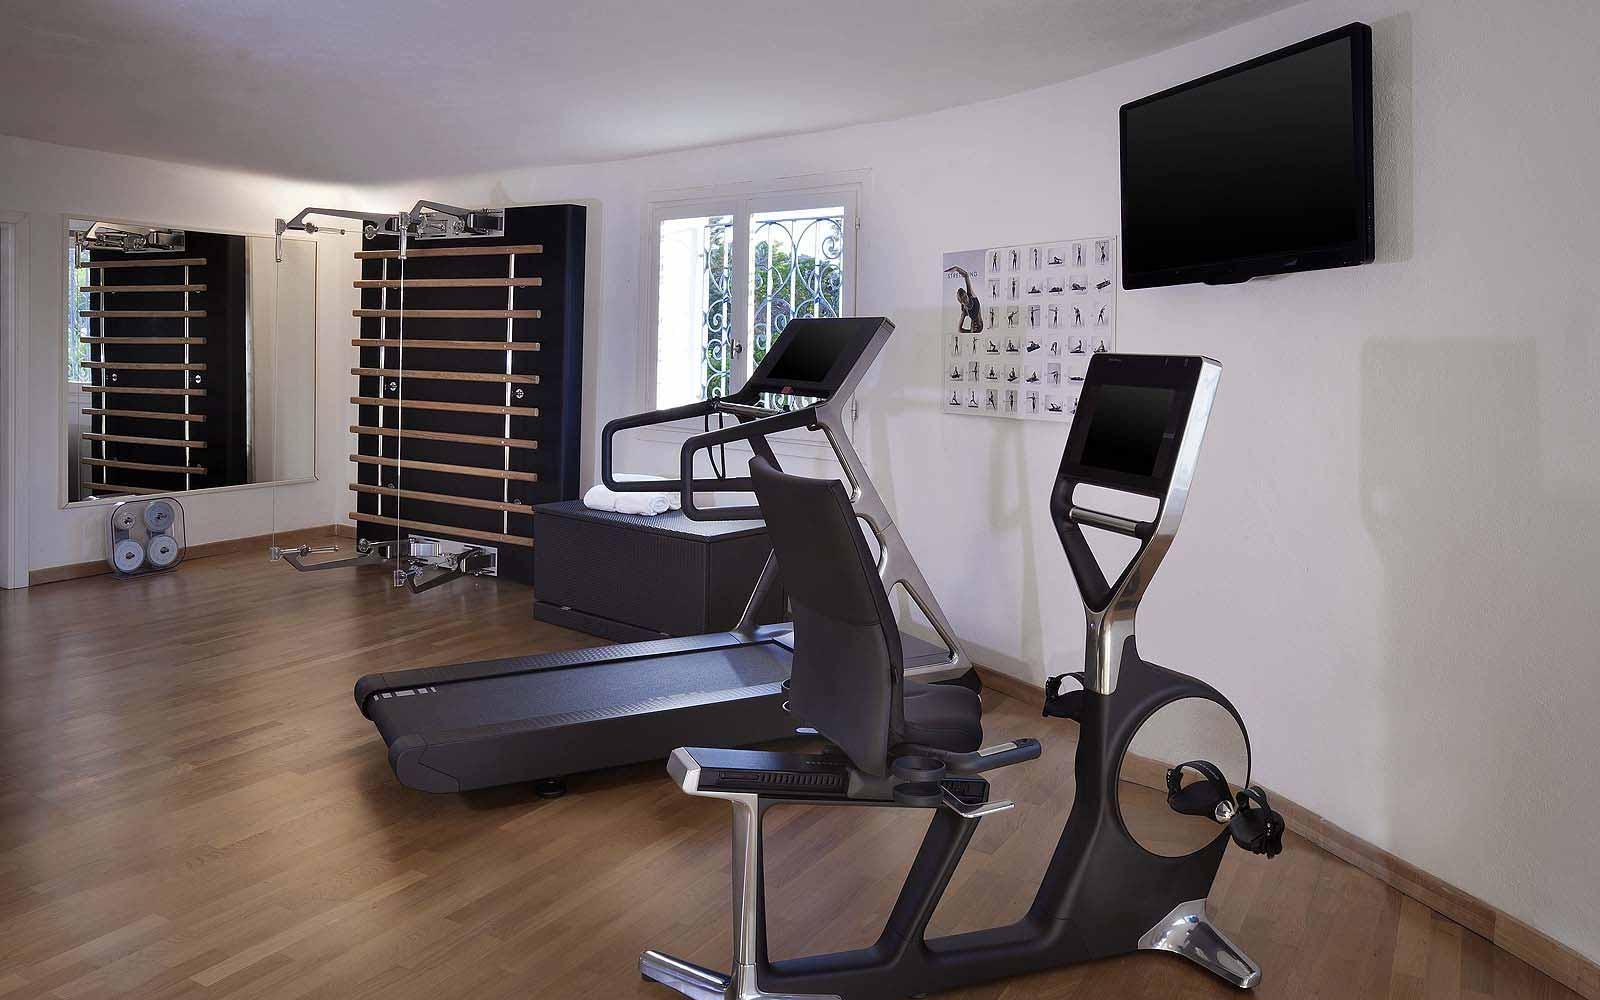 Indoor fitness centre at the Hotel Romazzino